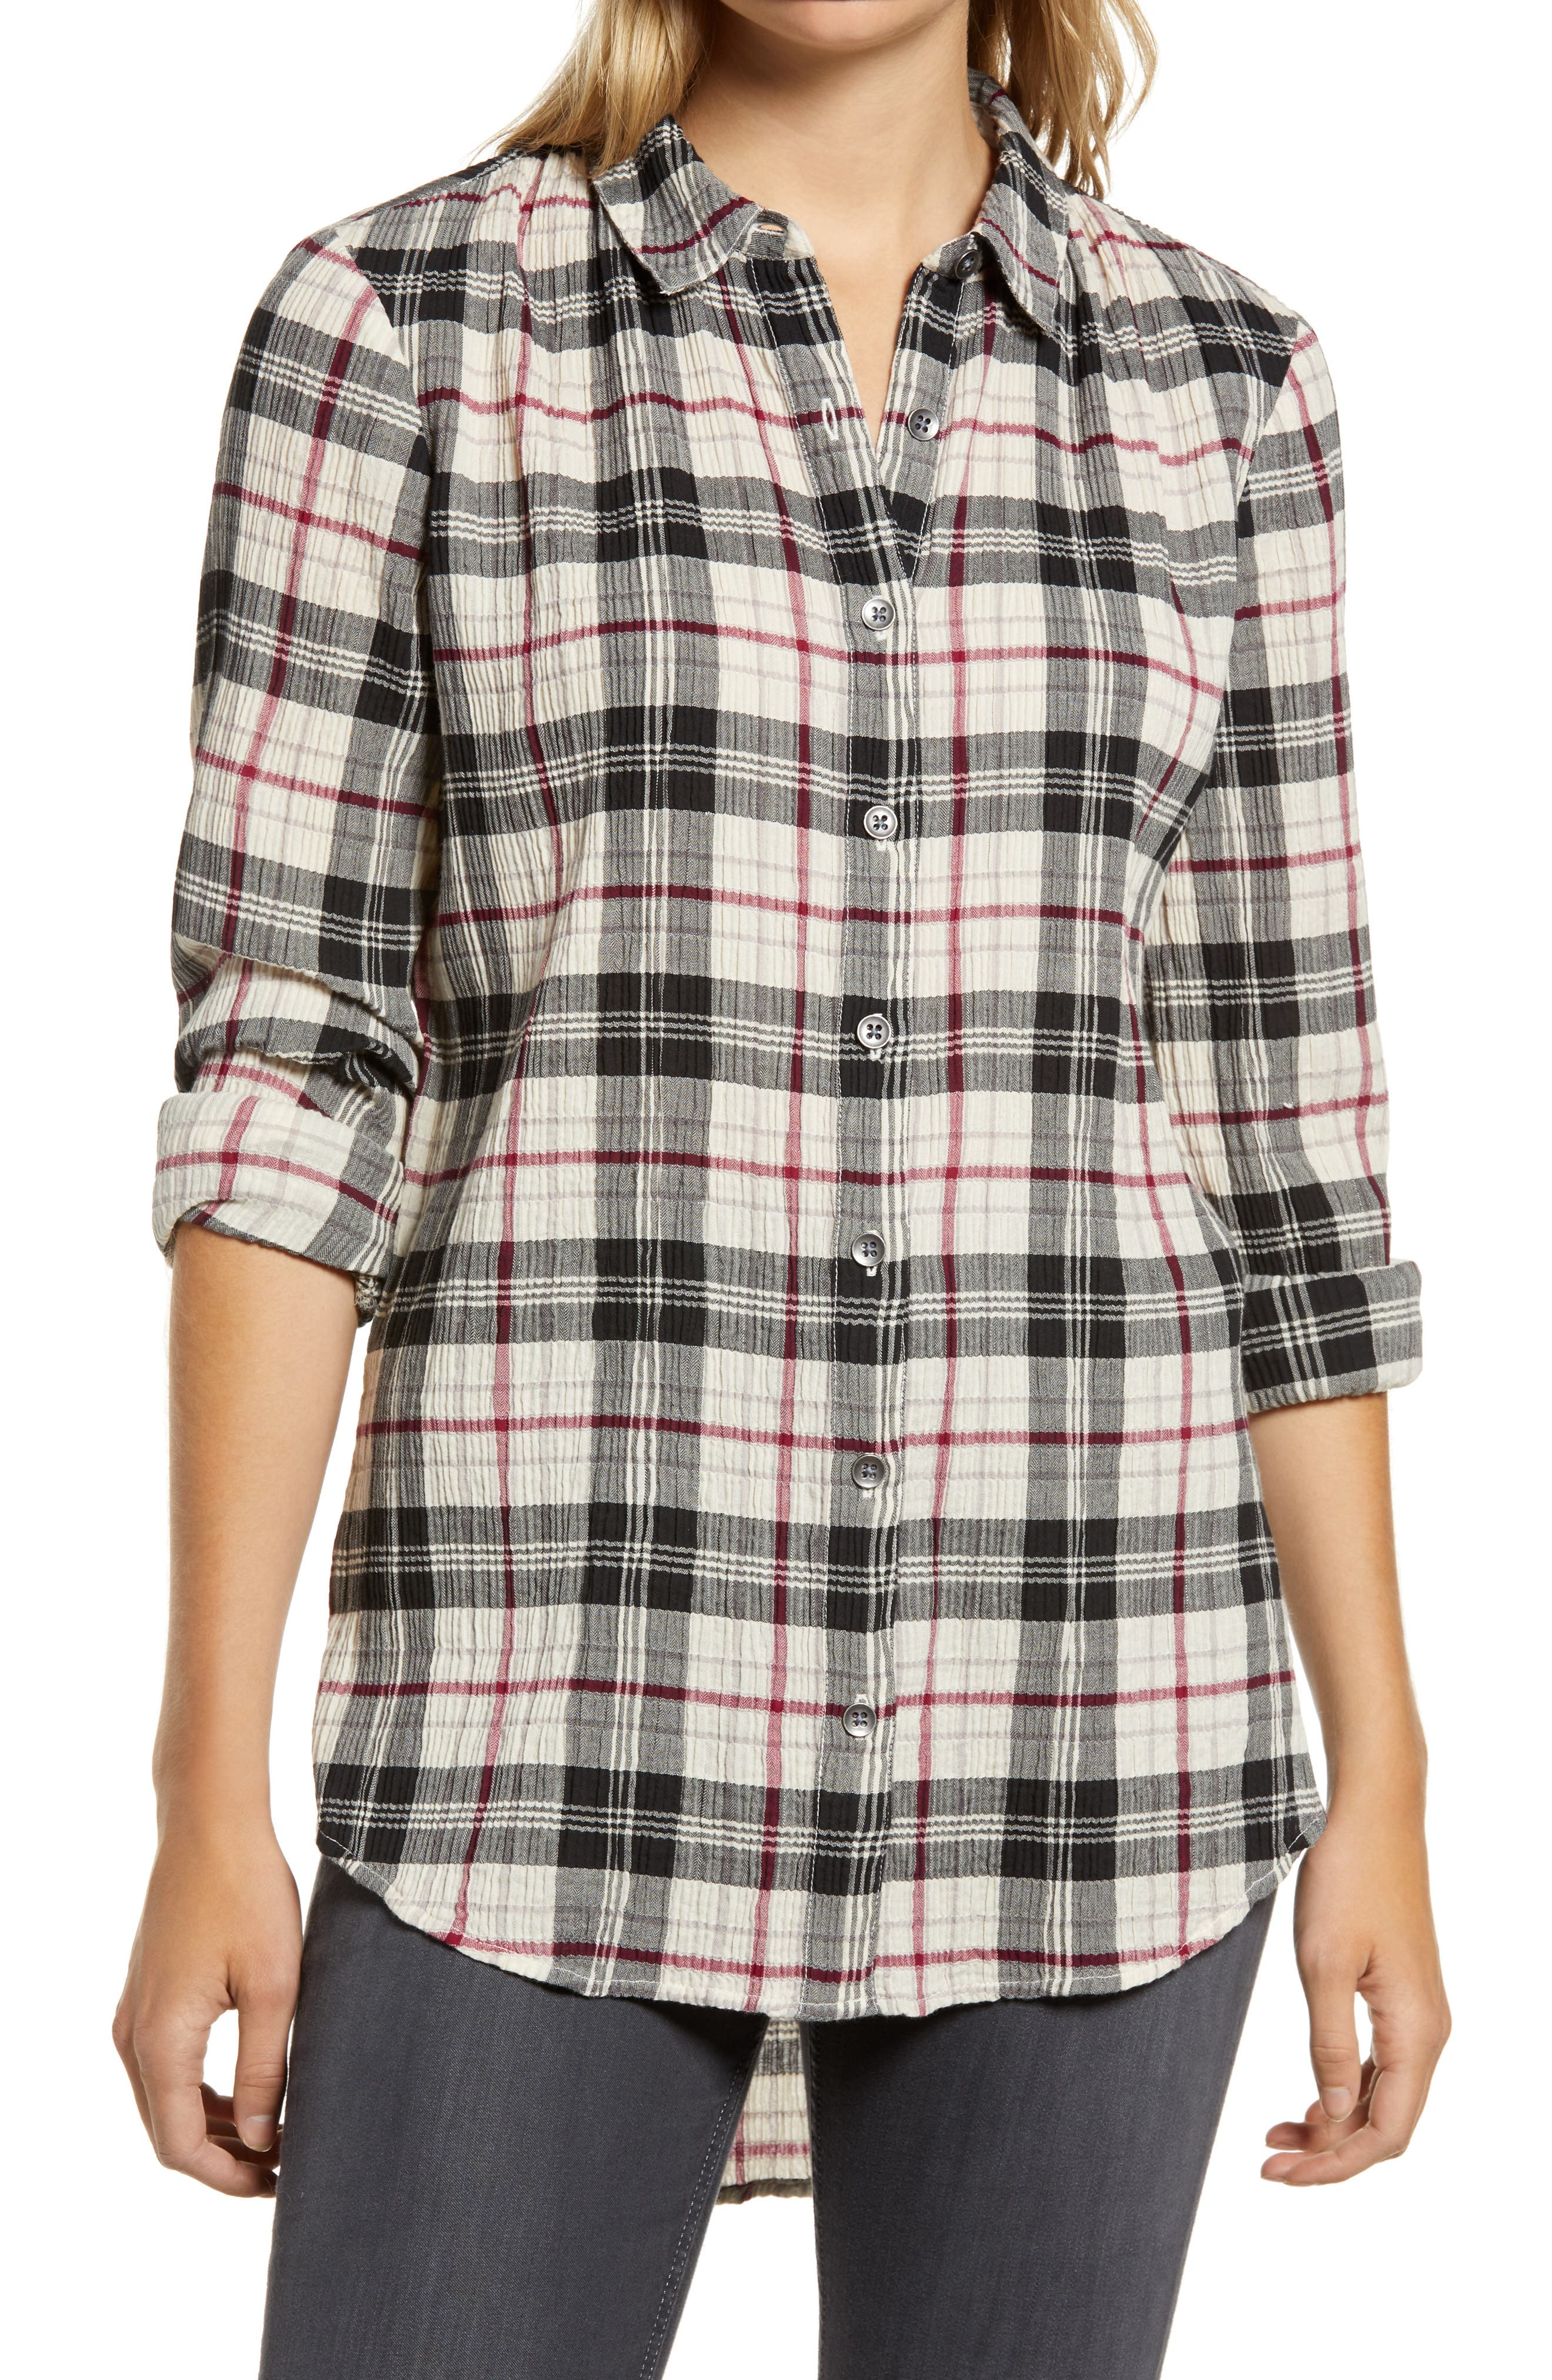 Weekend plaid is perfected in this tunic-length shirt of soft twill with a cozy crimped texture. Style Name: Caslon Plaid Tunic Shirt (Regular & Petite). Style Number: 5620671. Available in stores.